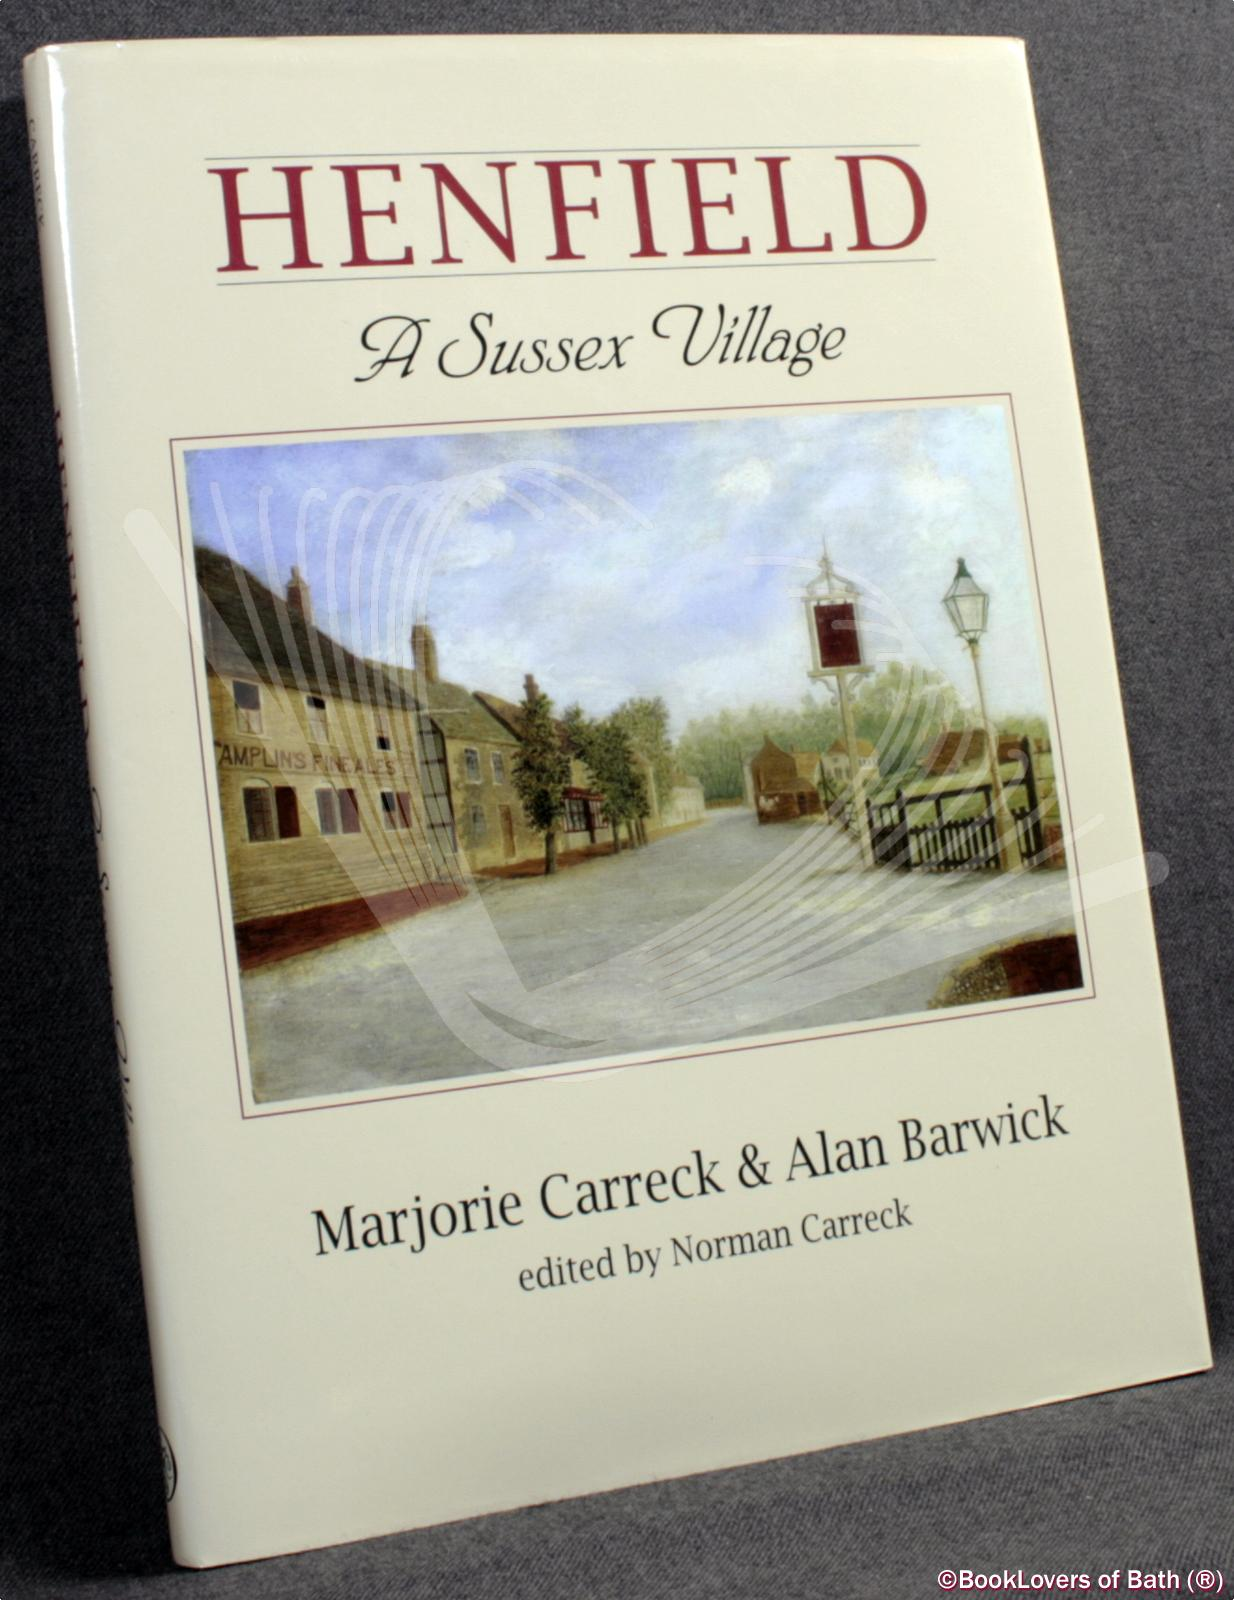 Henfield: A Sussex Village - Marjorie Carreck & Alan Barwick